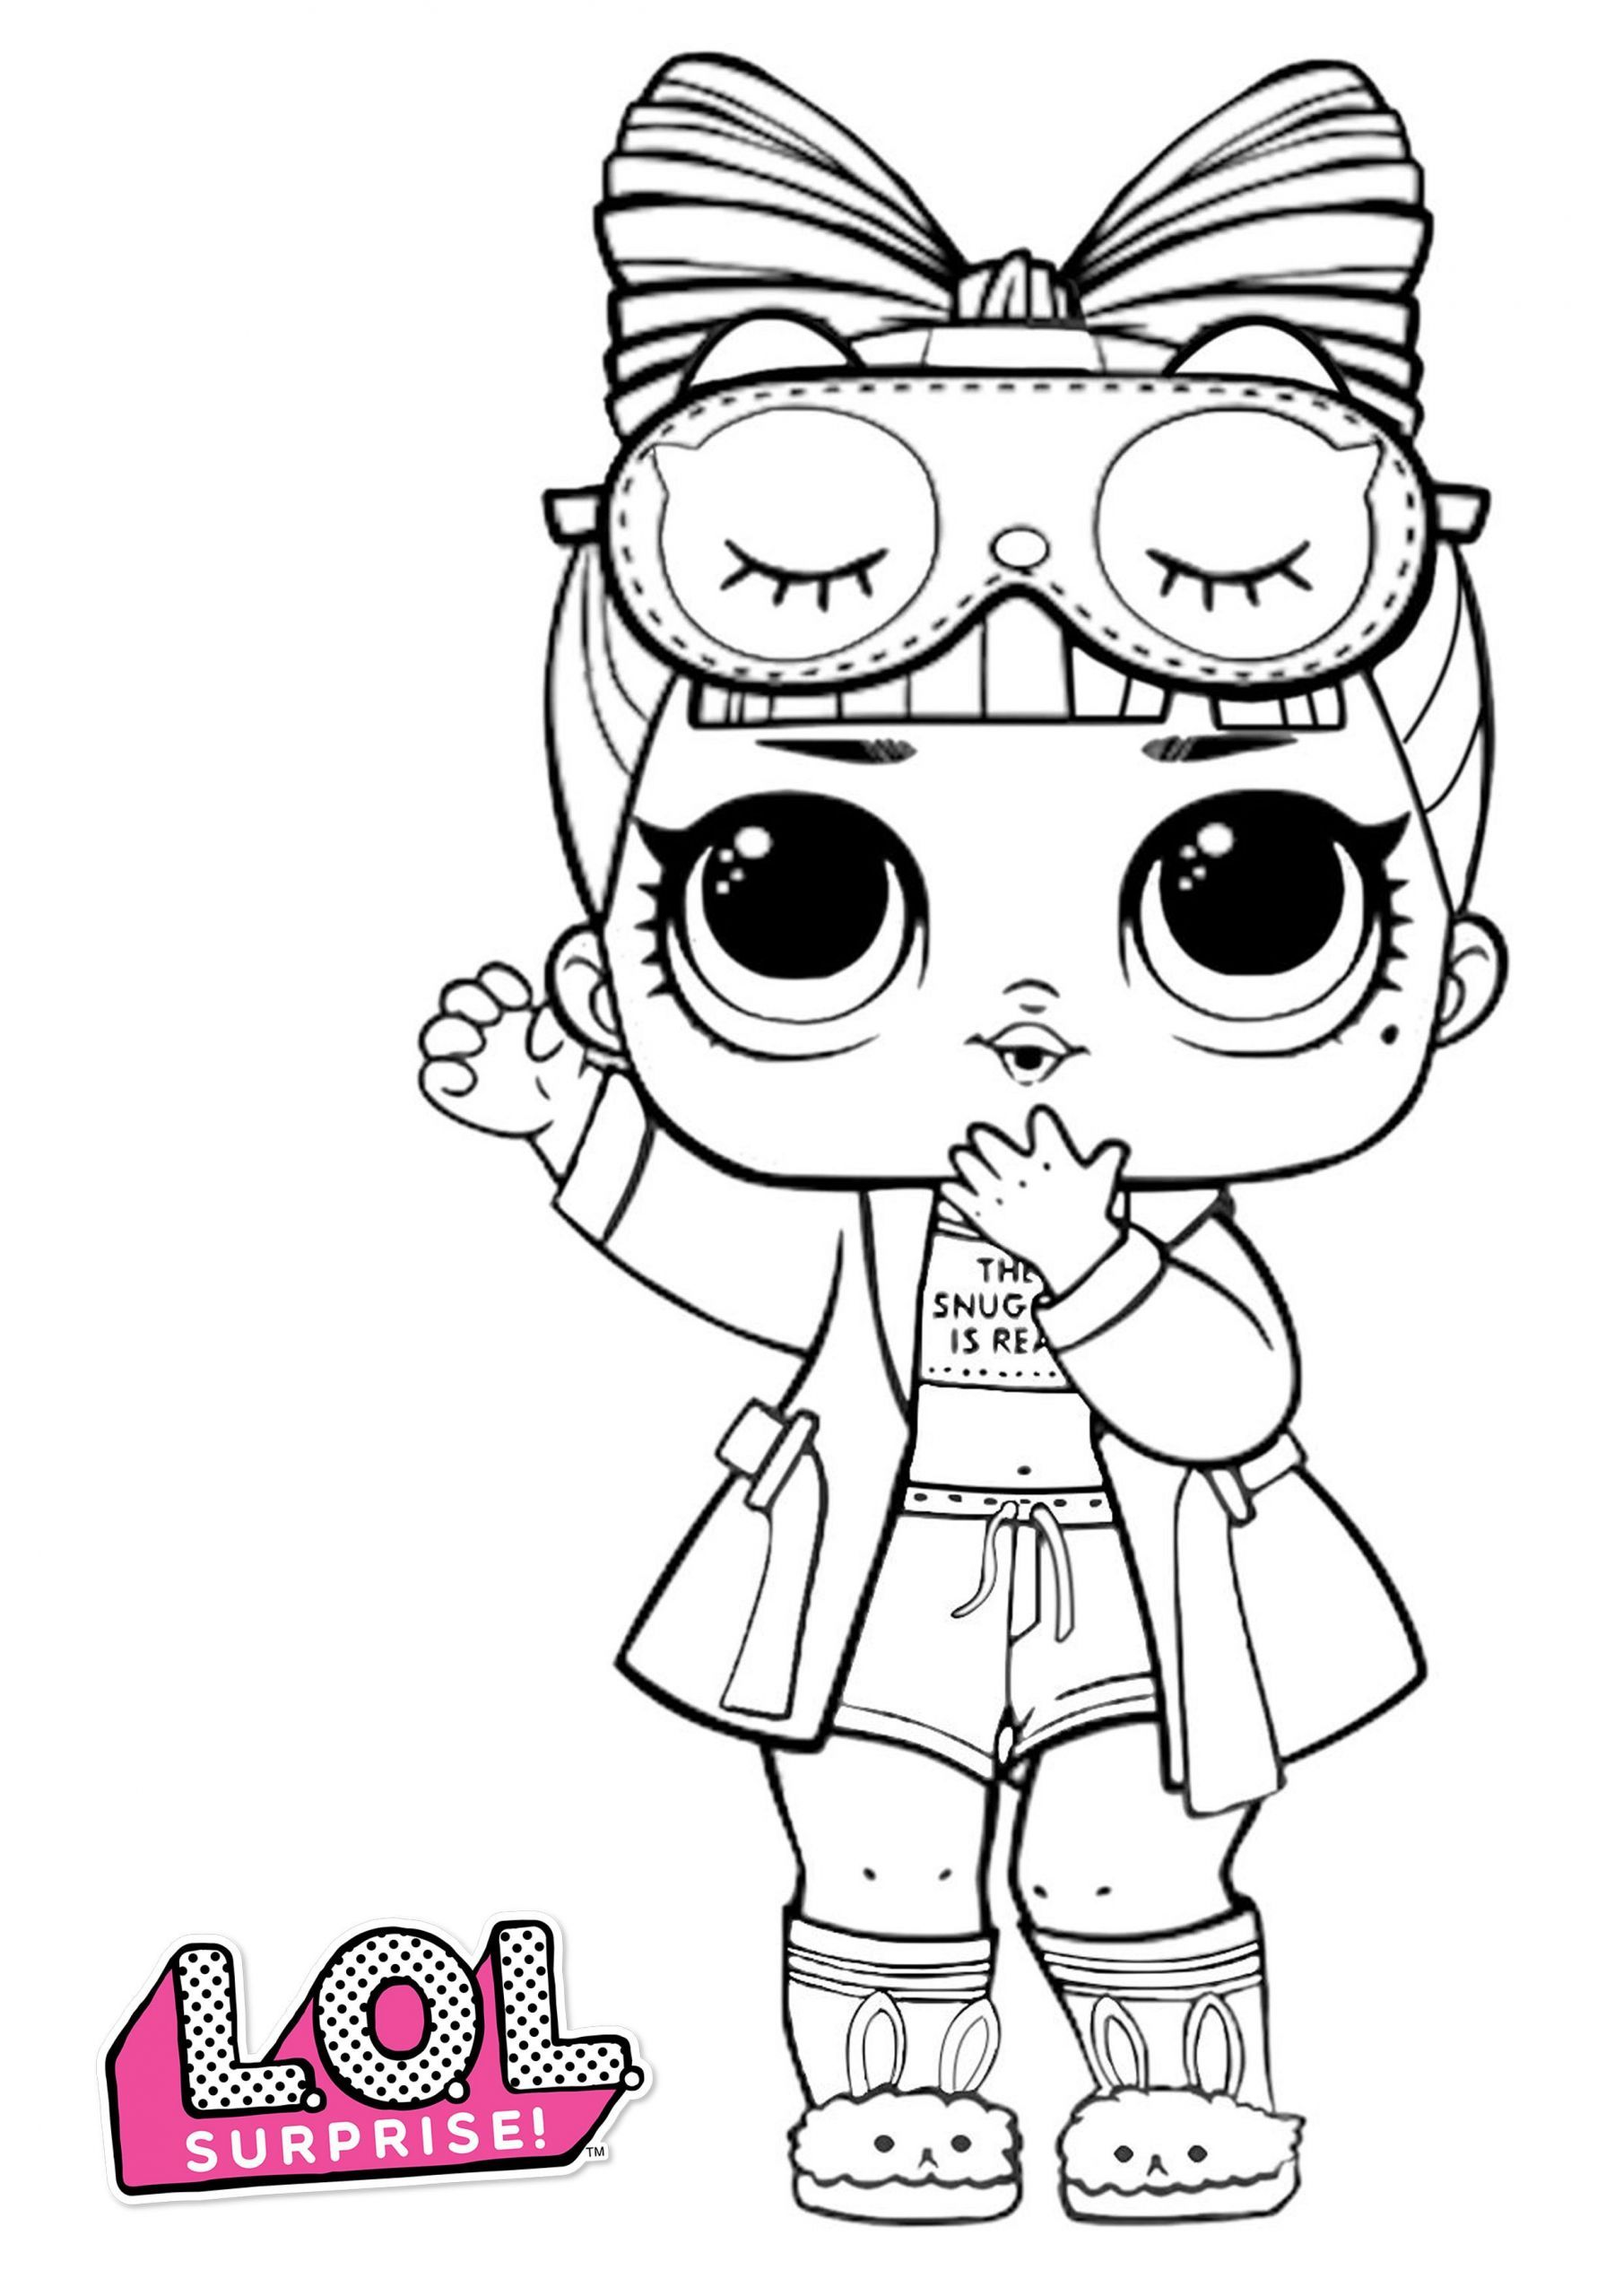 Disegni Lol Surprise Nuovo Pin Di Merit Amon Su Lol Of Disegni Lol Surprise Scaled Disegni Lo Lol Dolls Cute Coloring Pages Coloring Pages